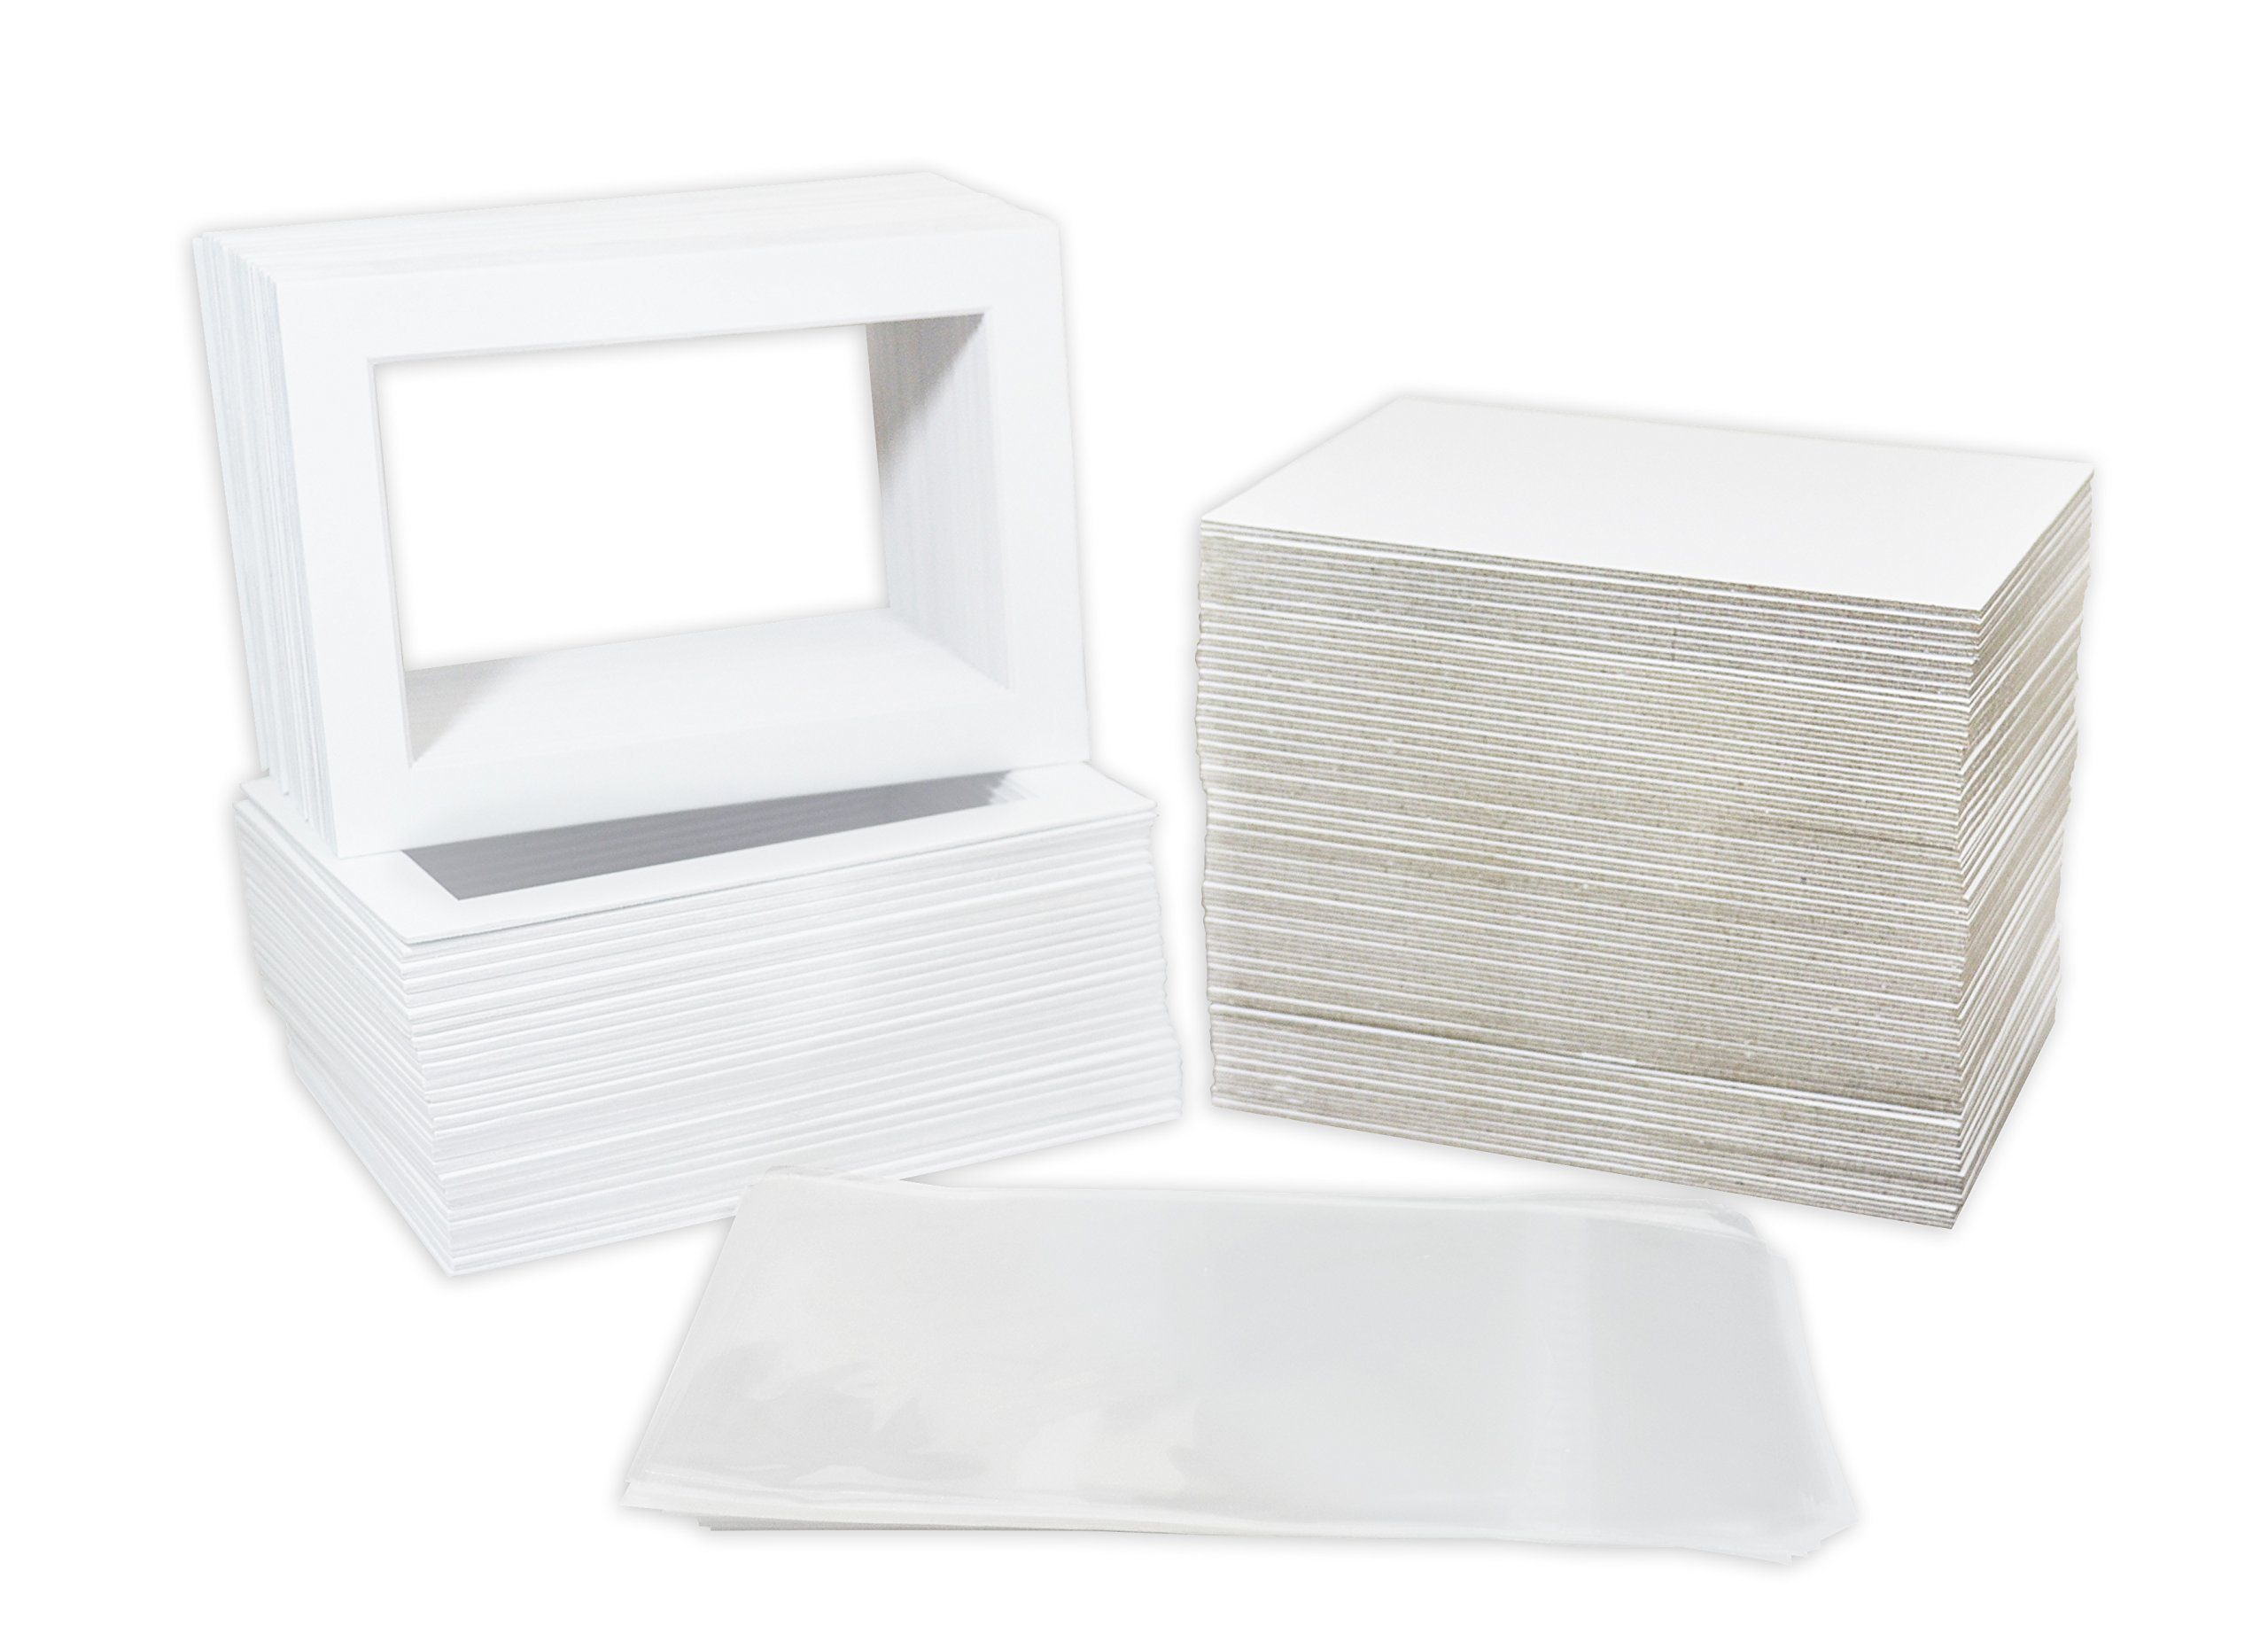 Pack of 100 5x7 WHITE Picture Mats Mattes with White Core Bevel Cut for 4x6 Photo + Back + Bags by Golden State Art